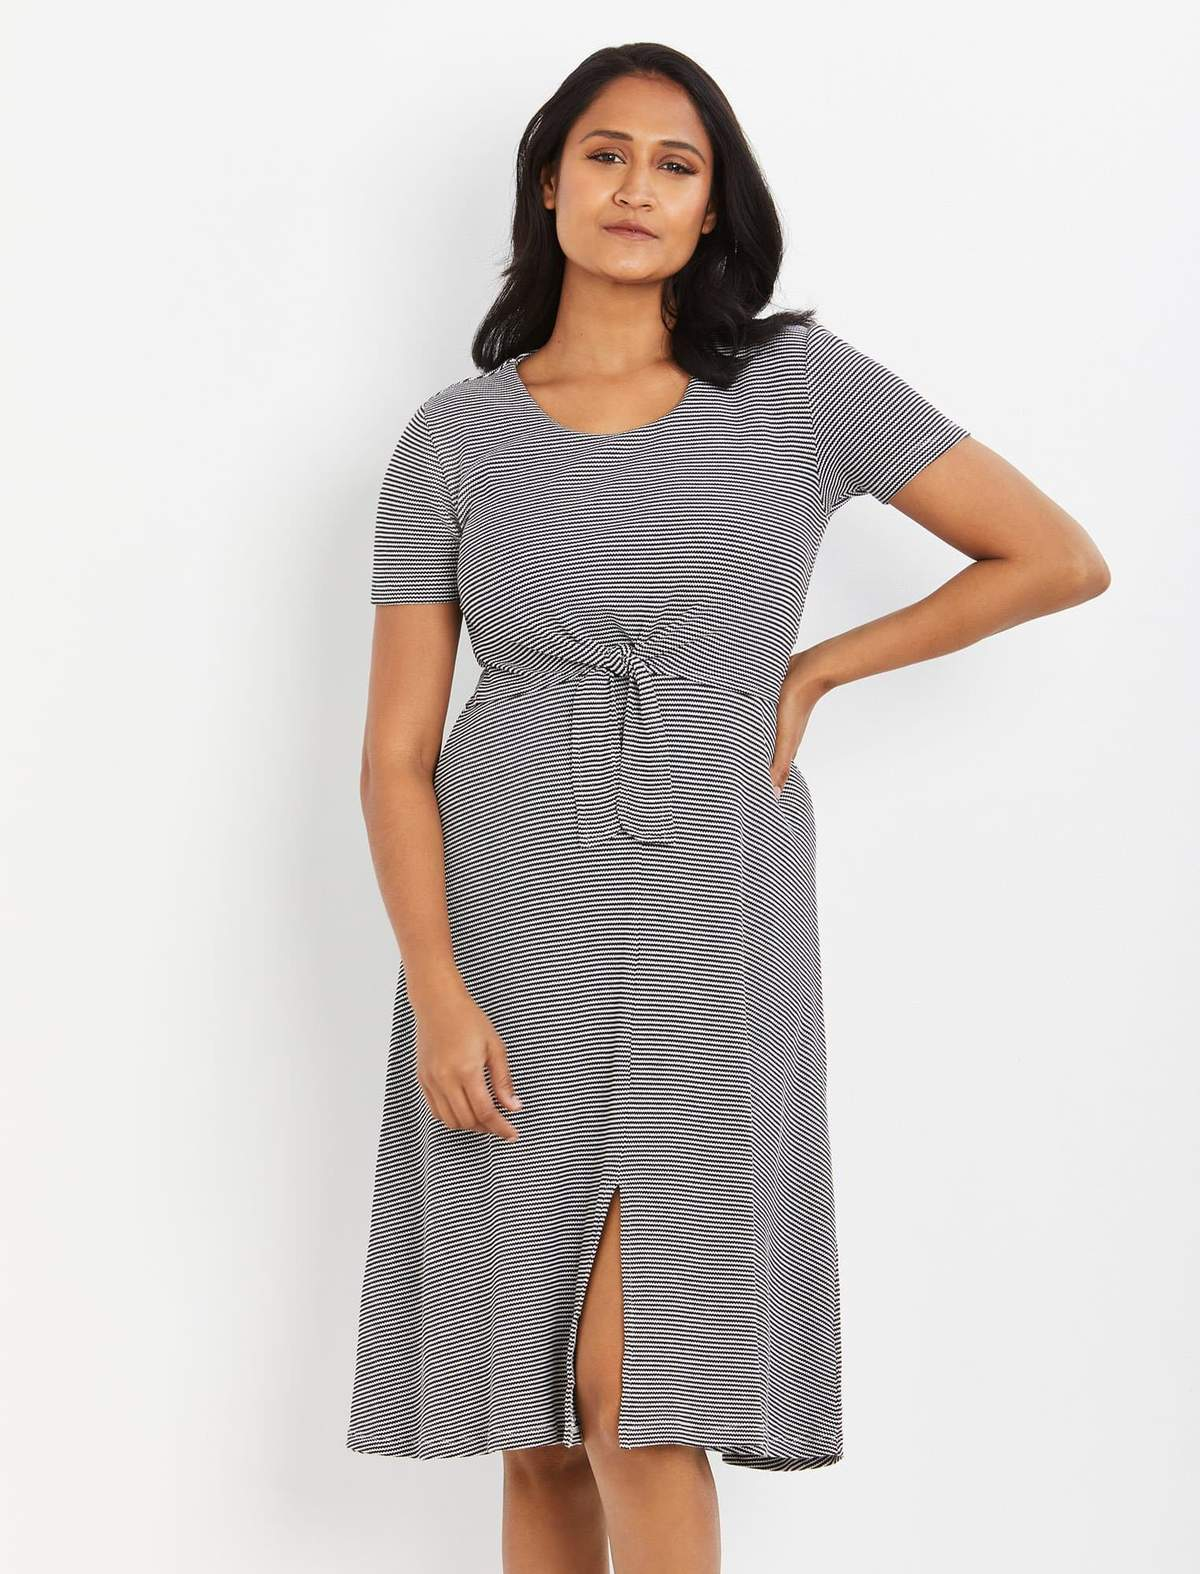 A Pea In The Pod Ripe Lift Up Tie Front Nursing Dress